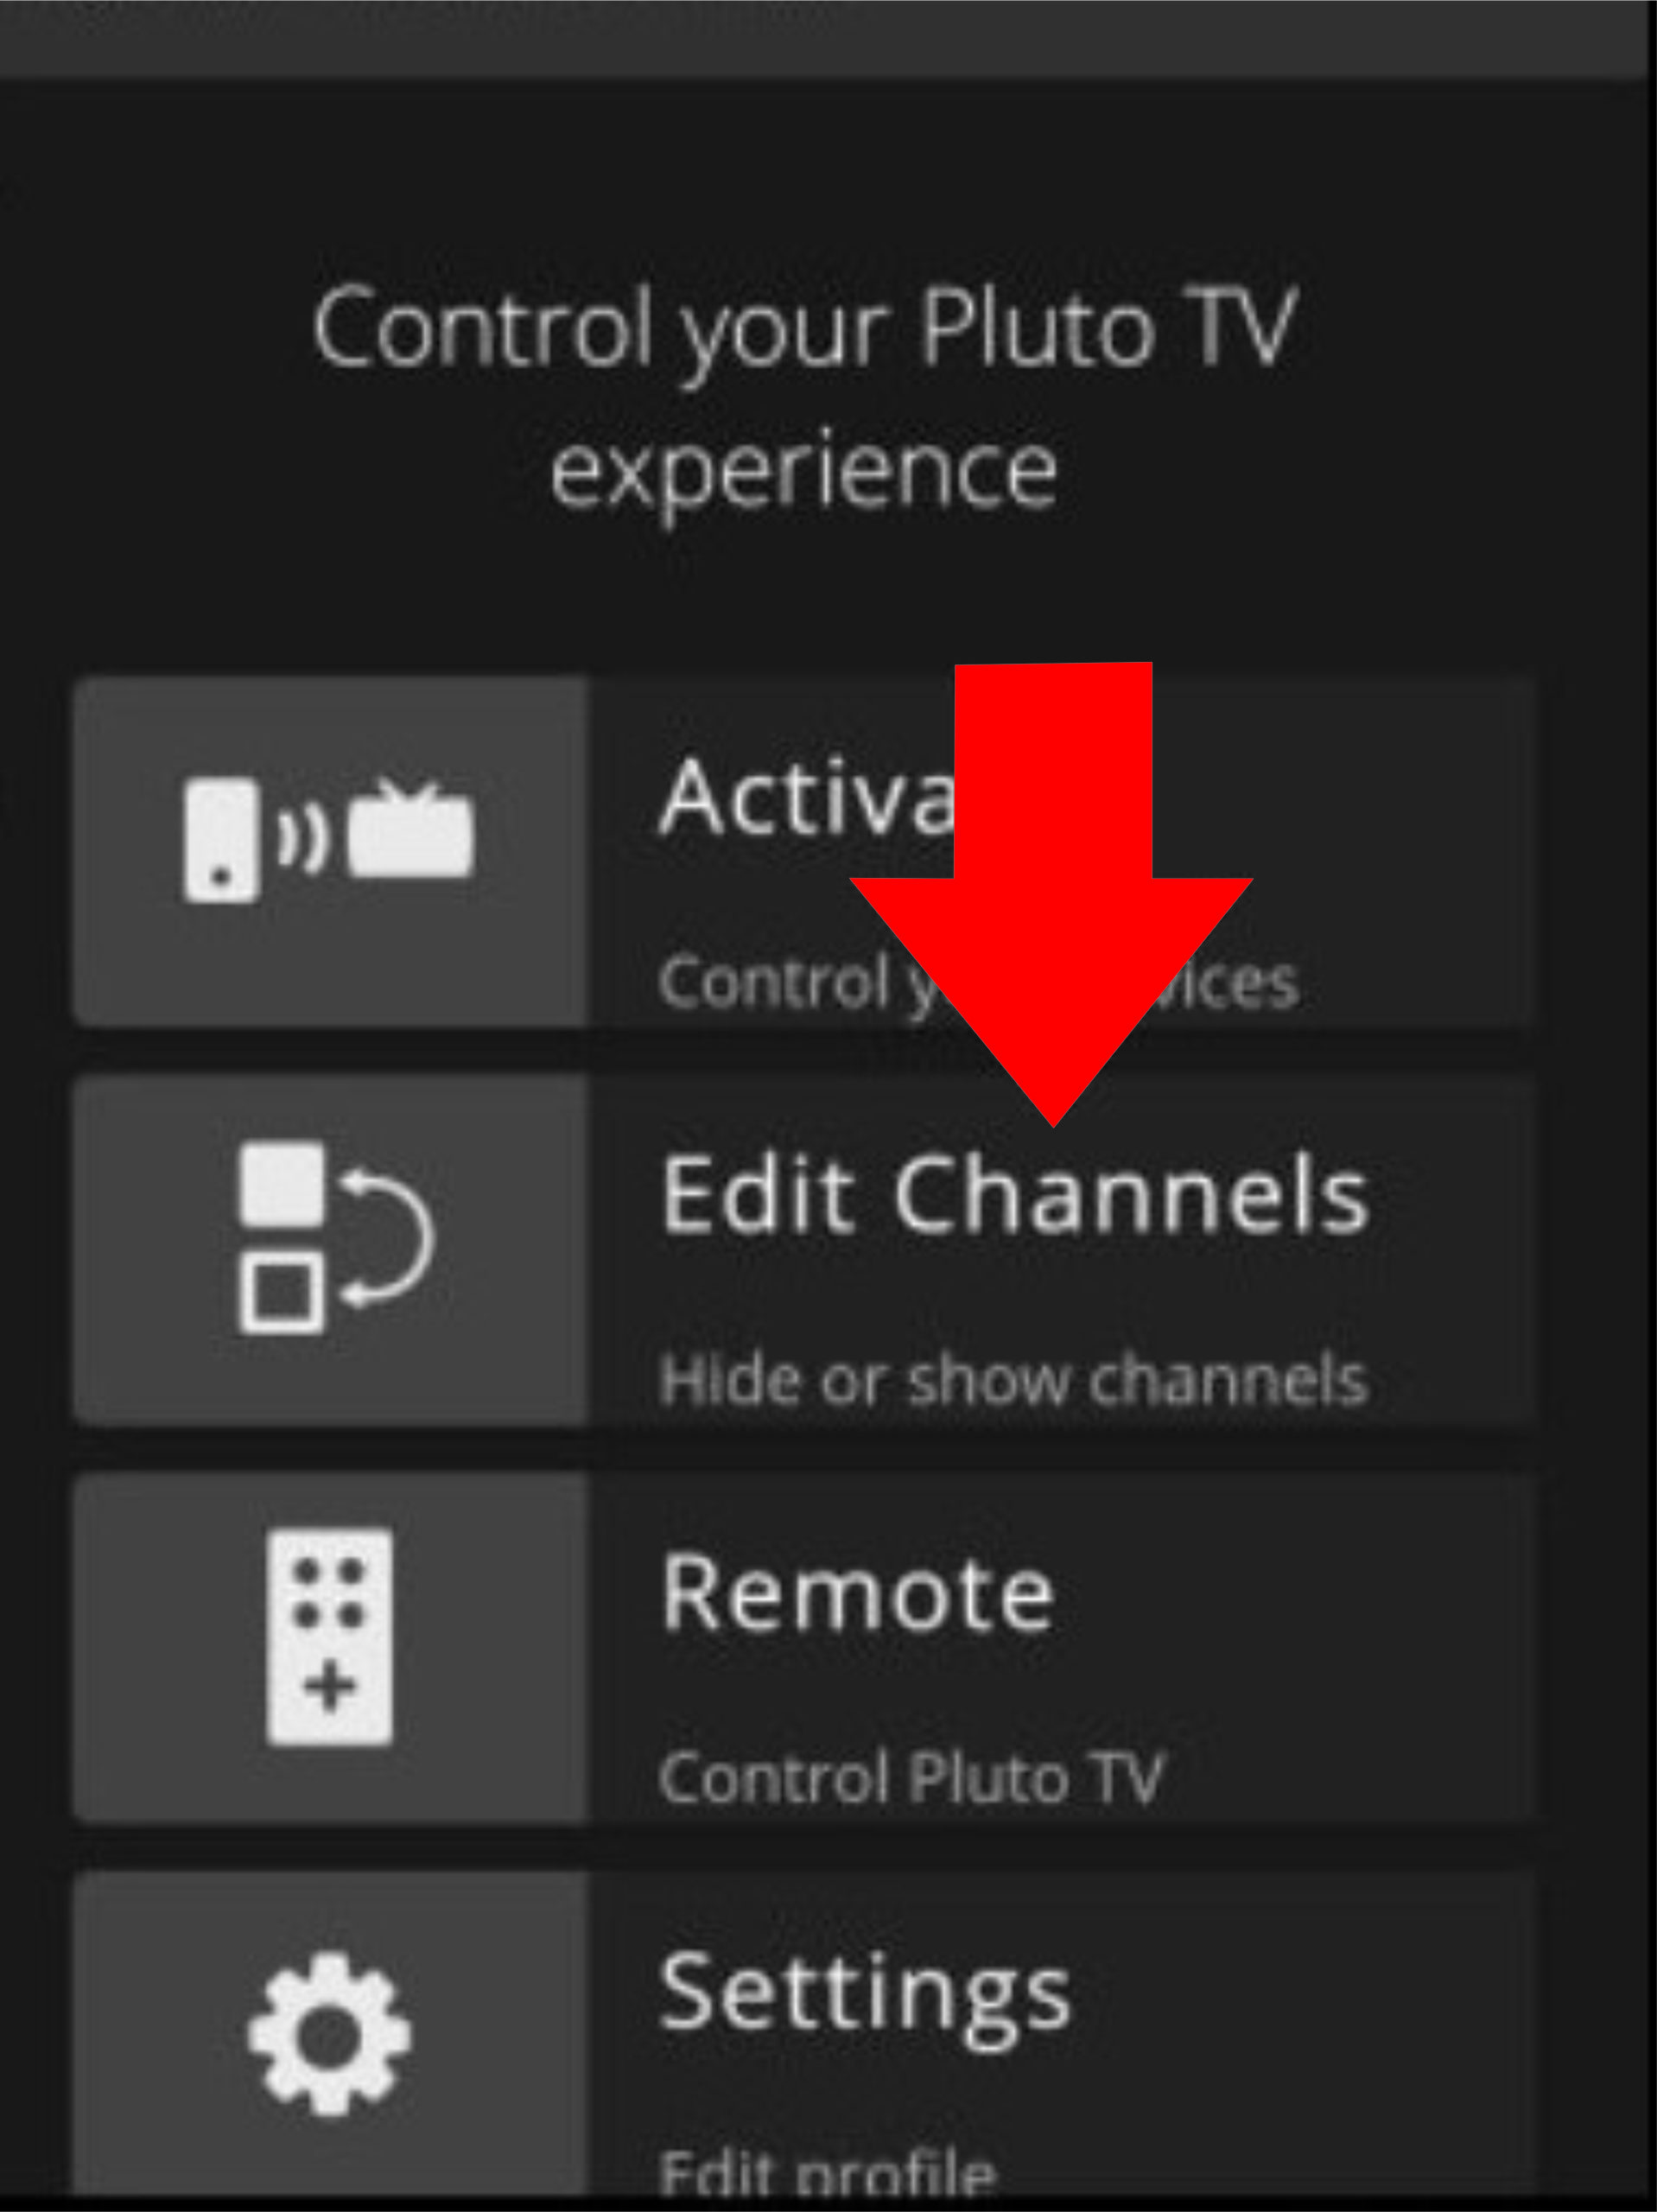 Pluto Tv Tween Shows : pluto, tween, shows, Channels, Pluto